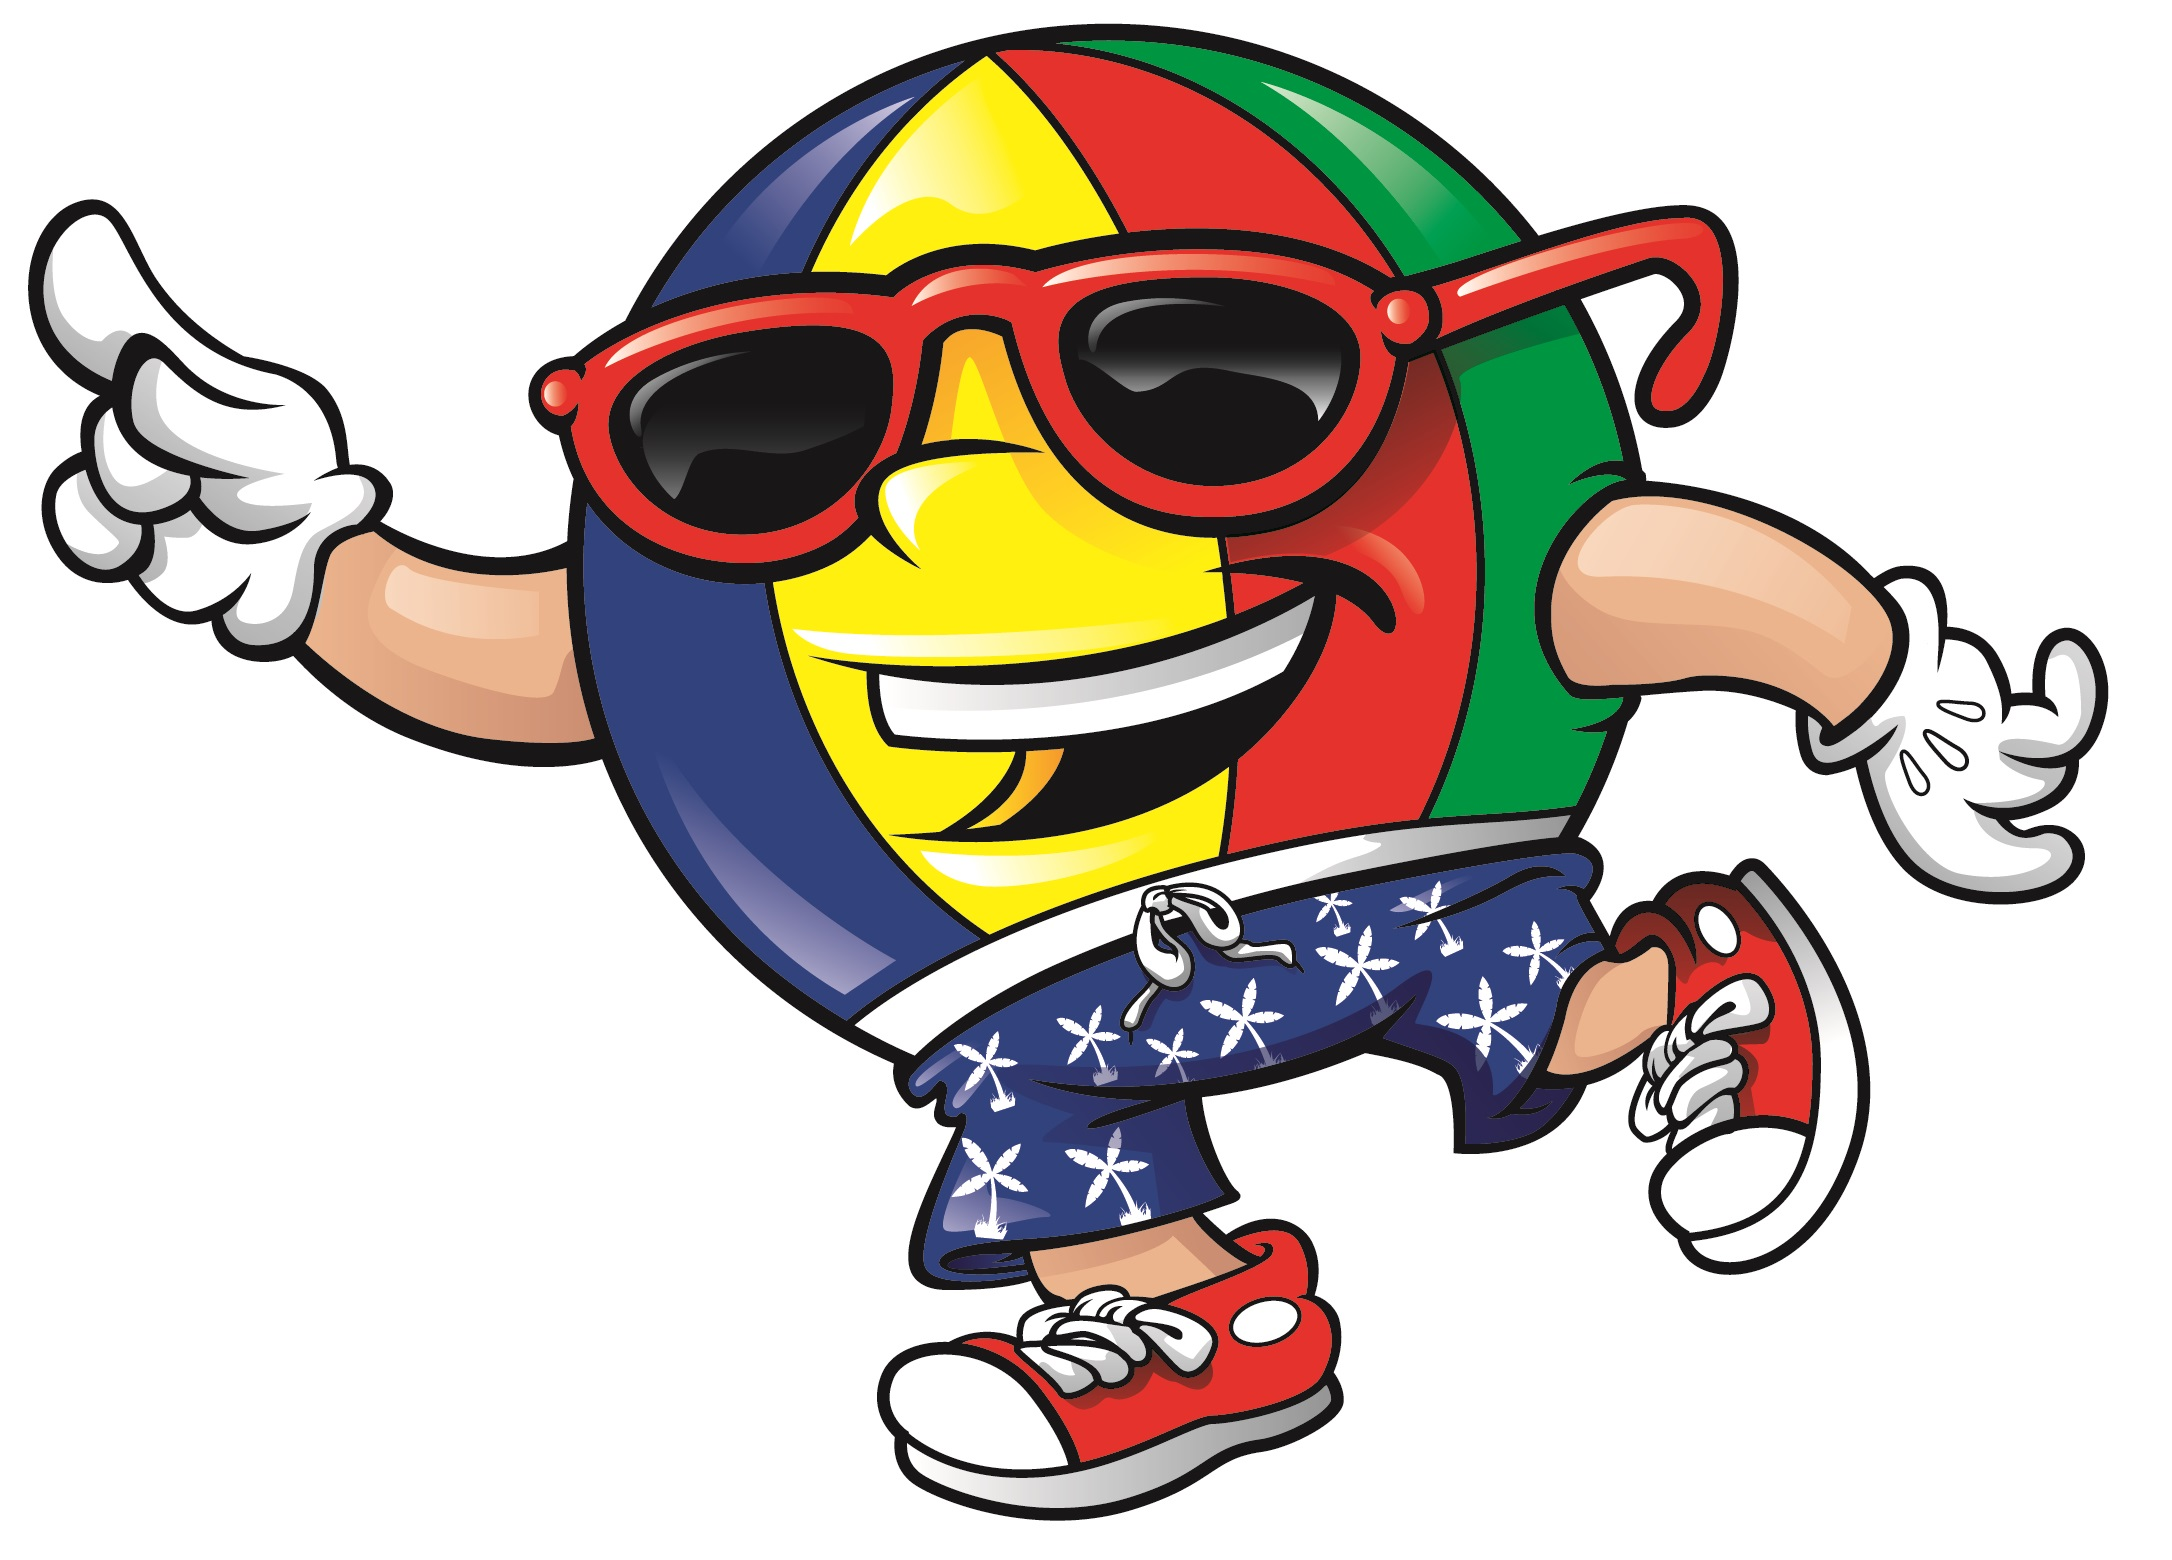 Colorful Beach Ball Mascot